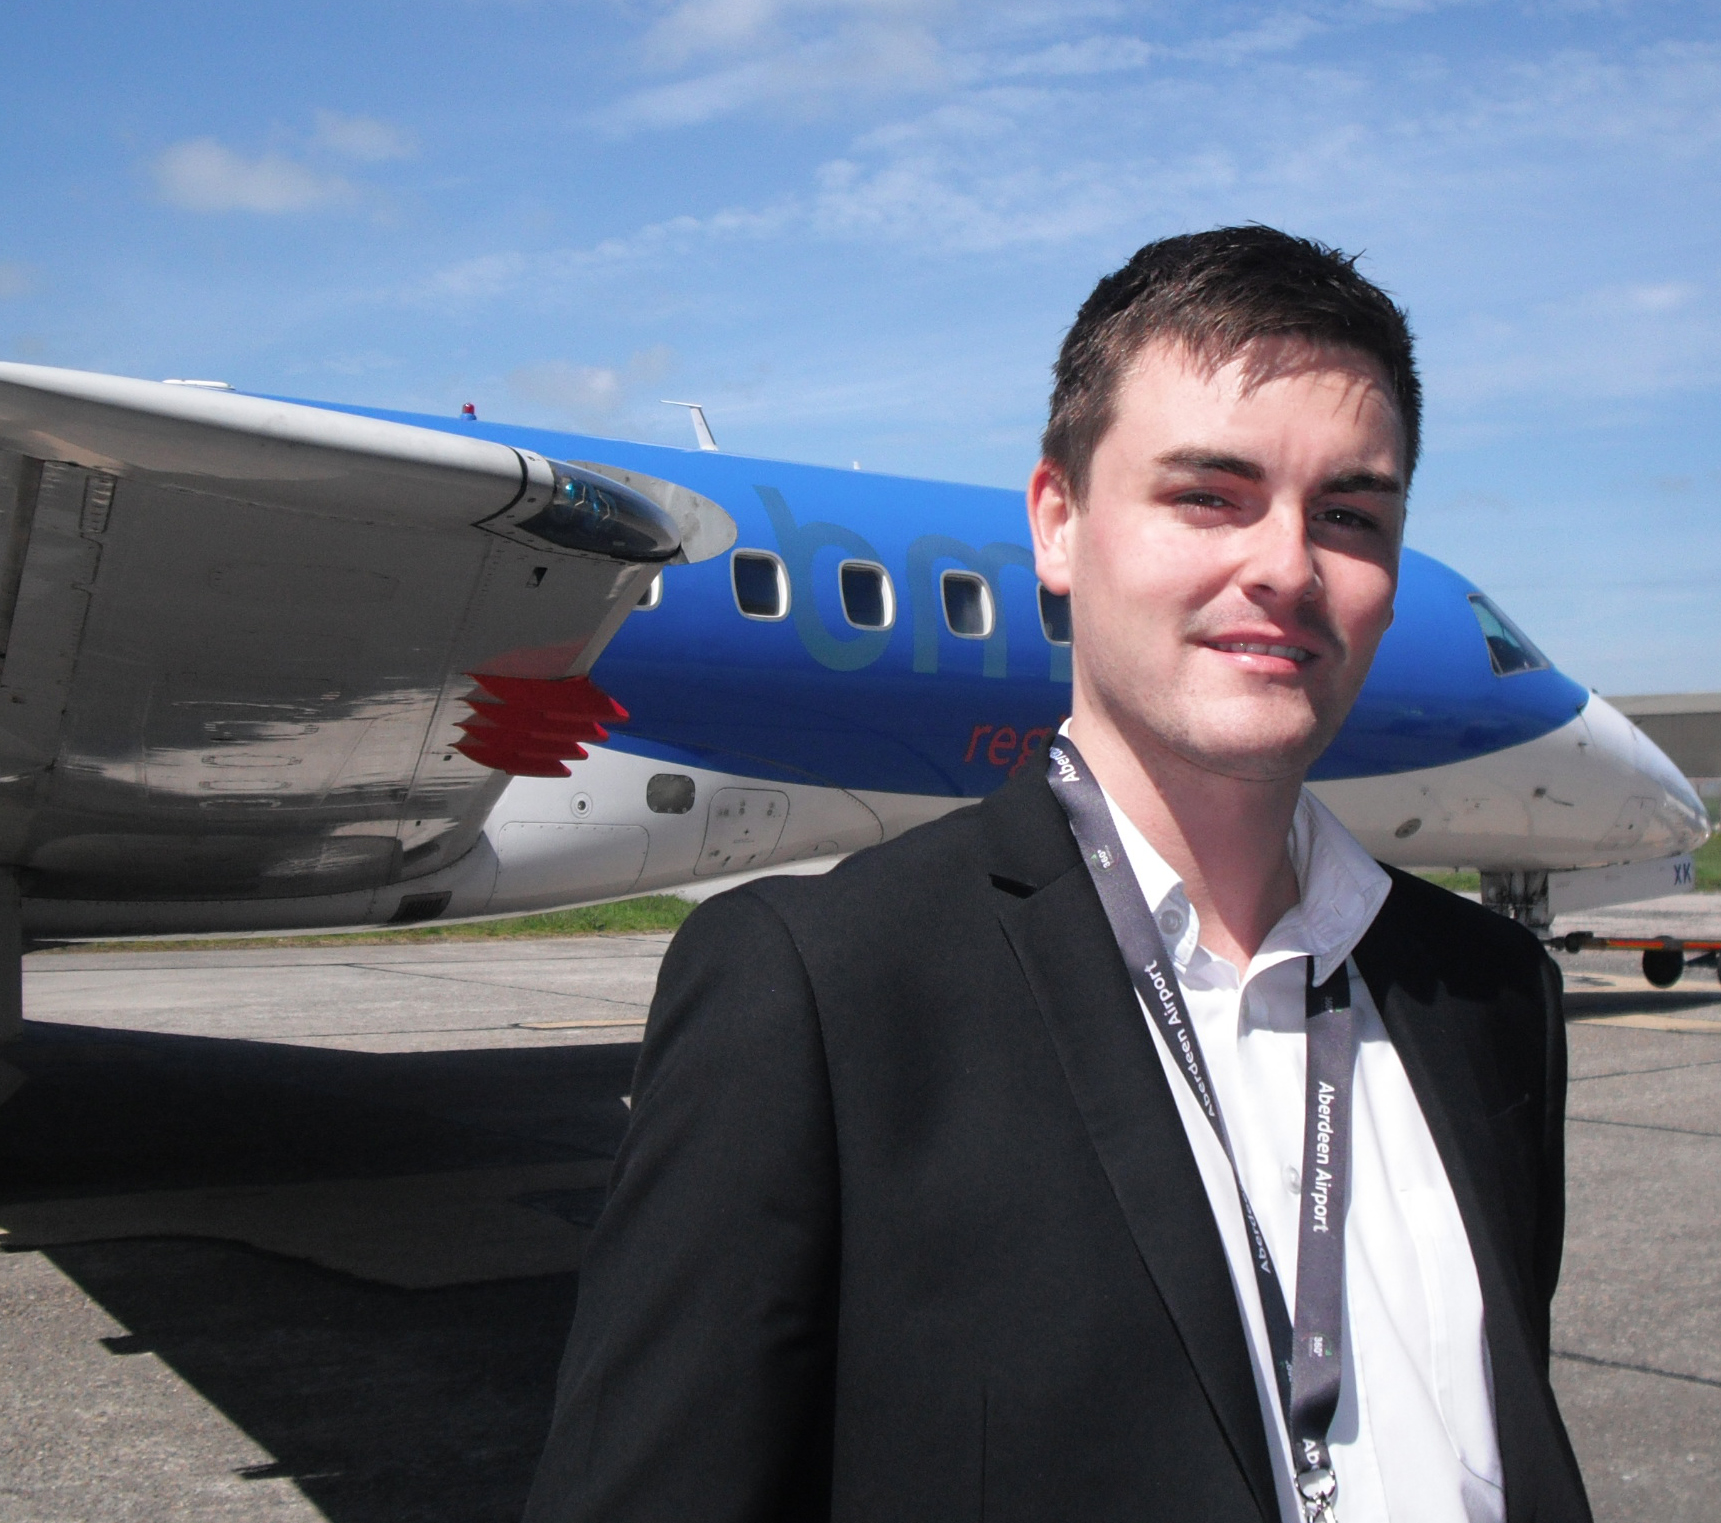 Jason-Stewart-Aberdeen-International-Airport